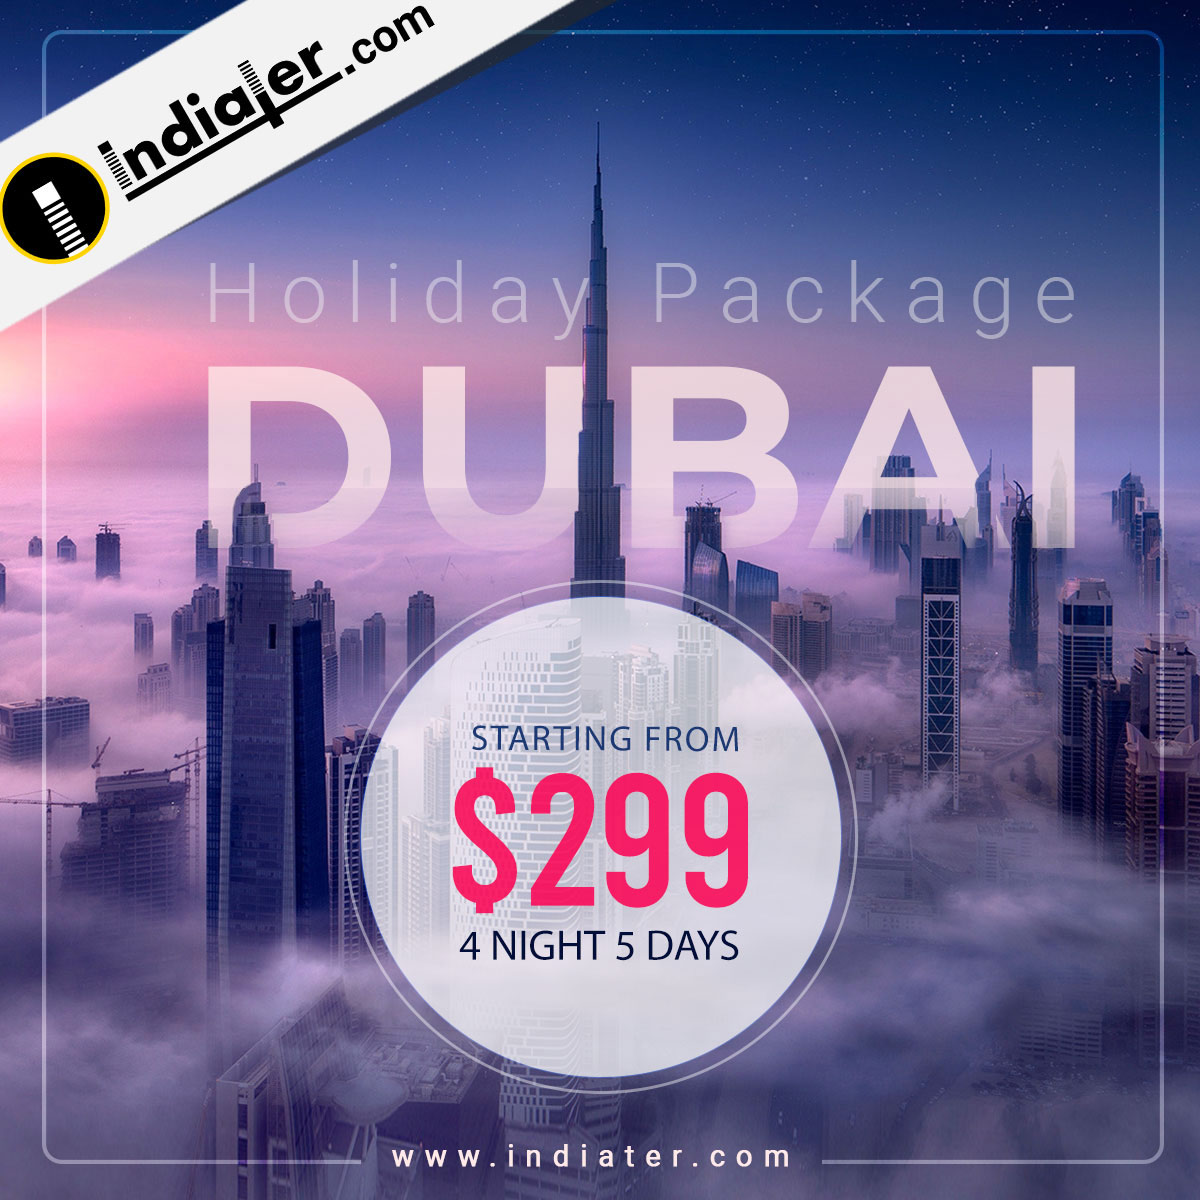 Dubai Holiday Package Travels Banner PSD